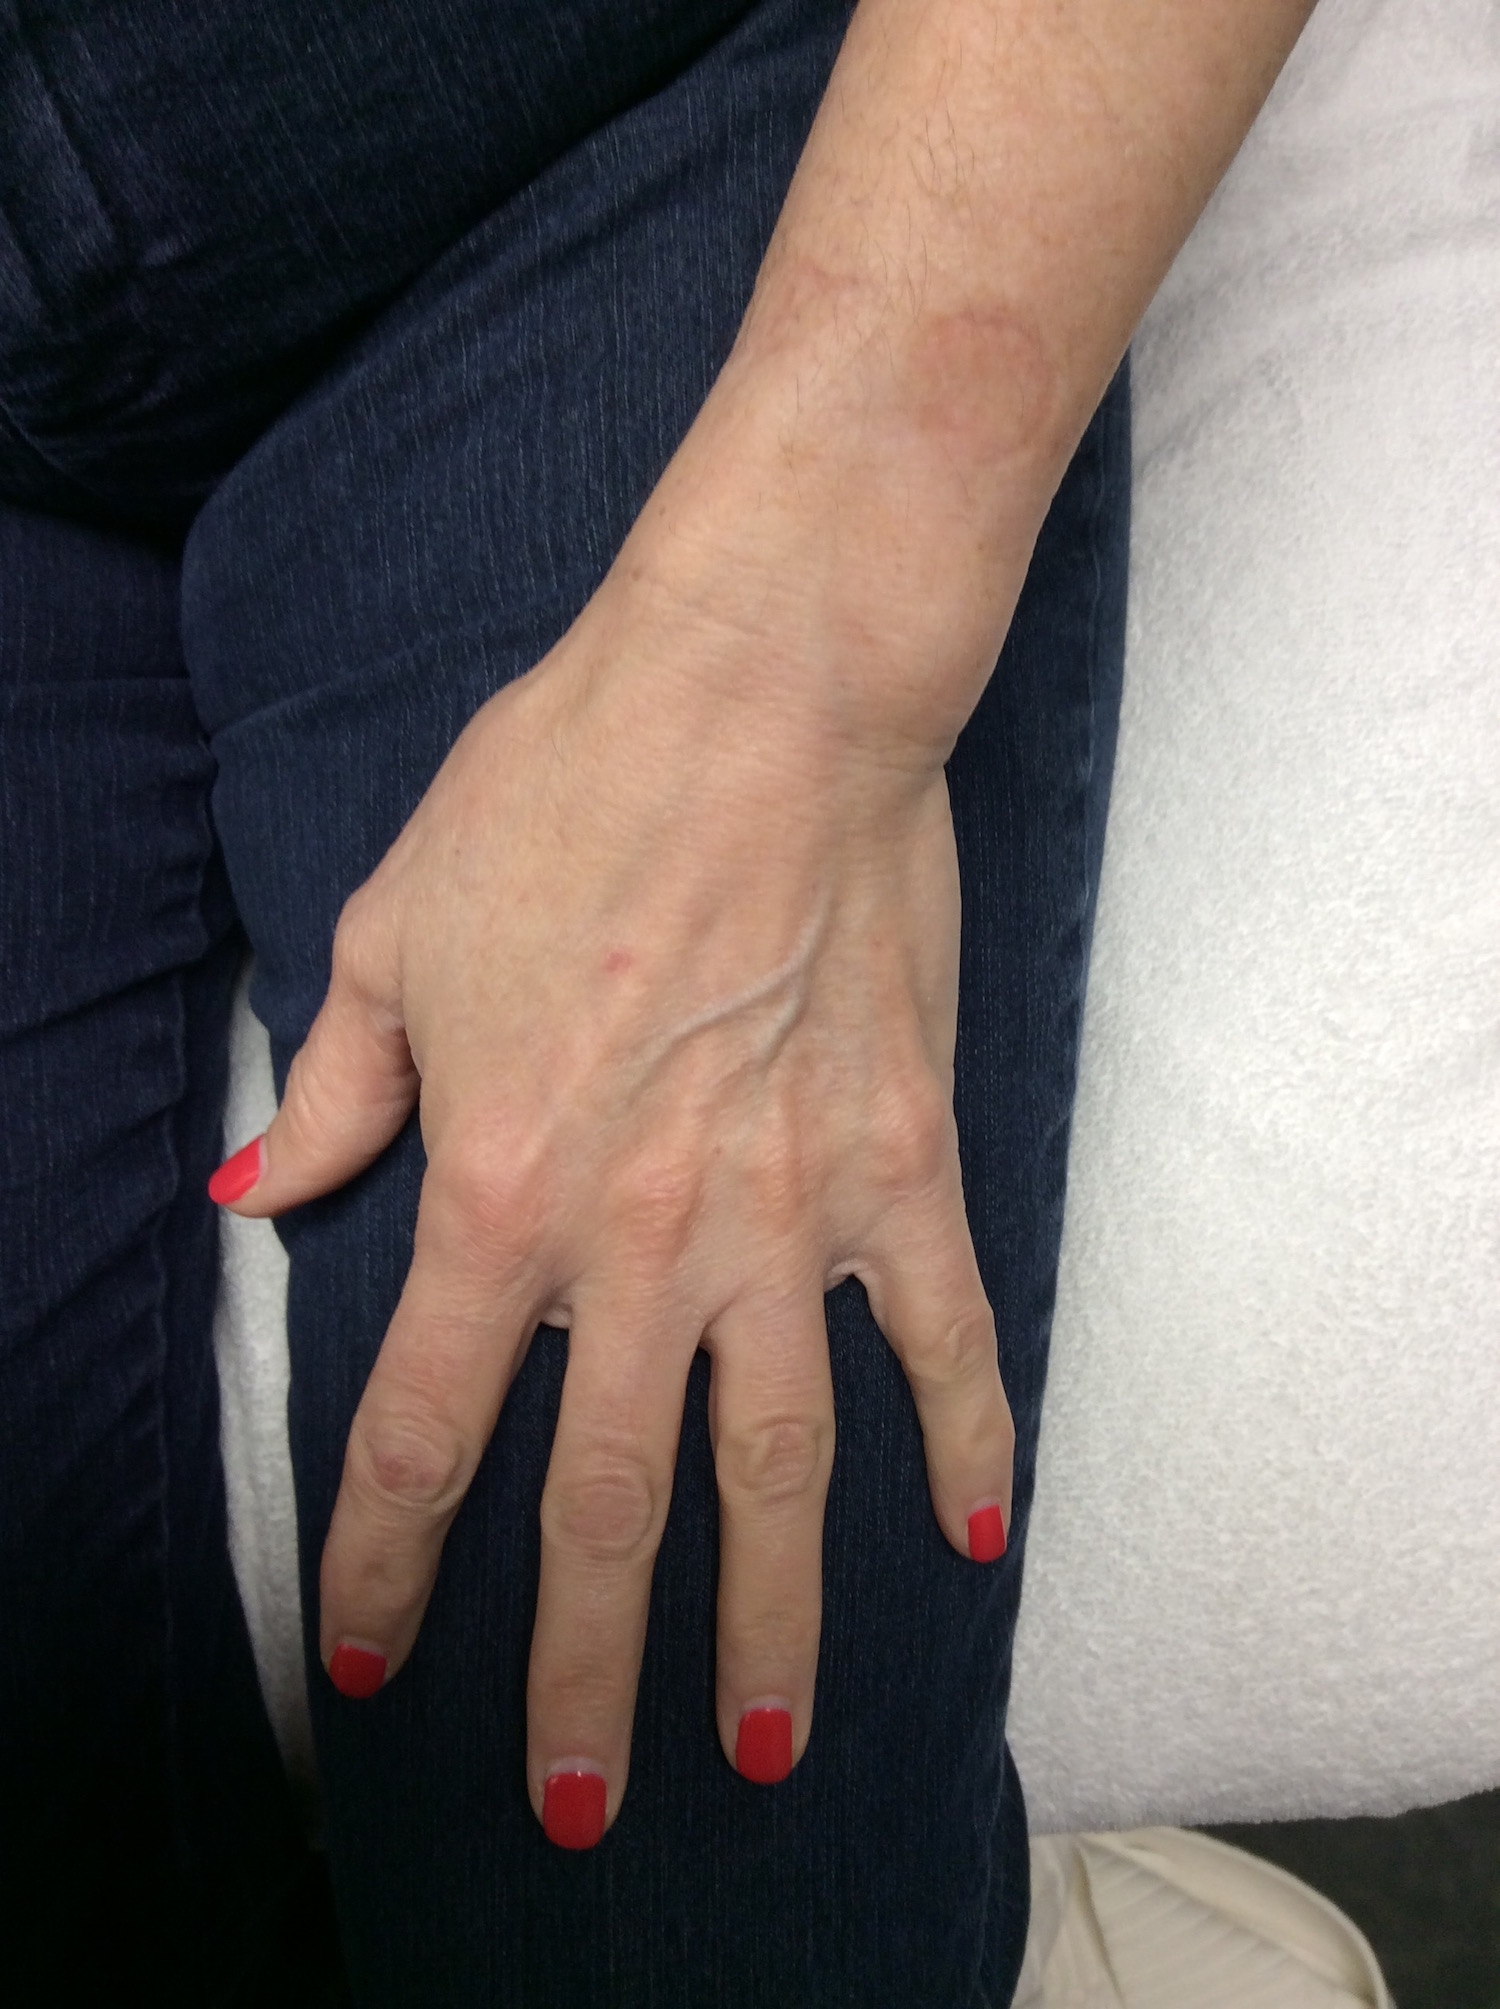 After Limelight (1 treatment, age 58)